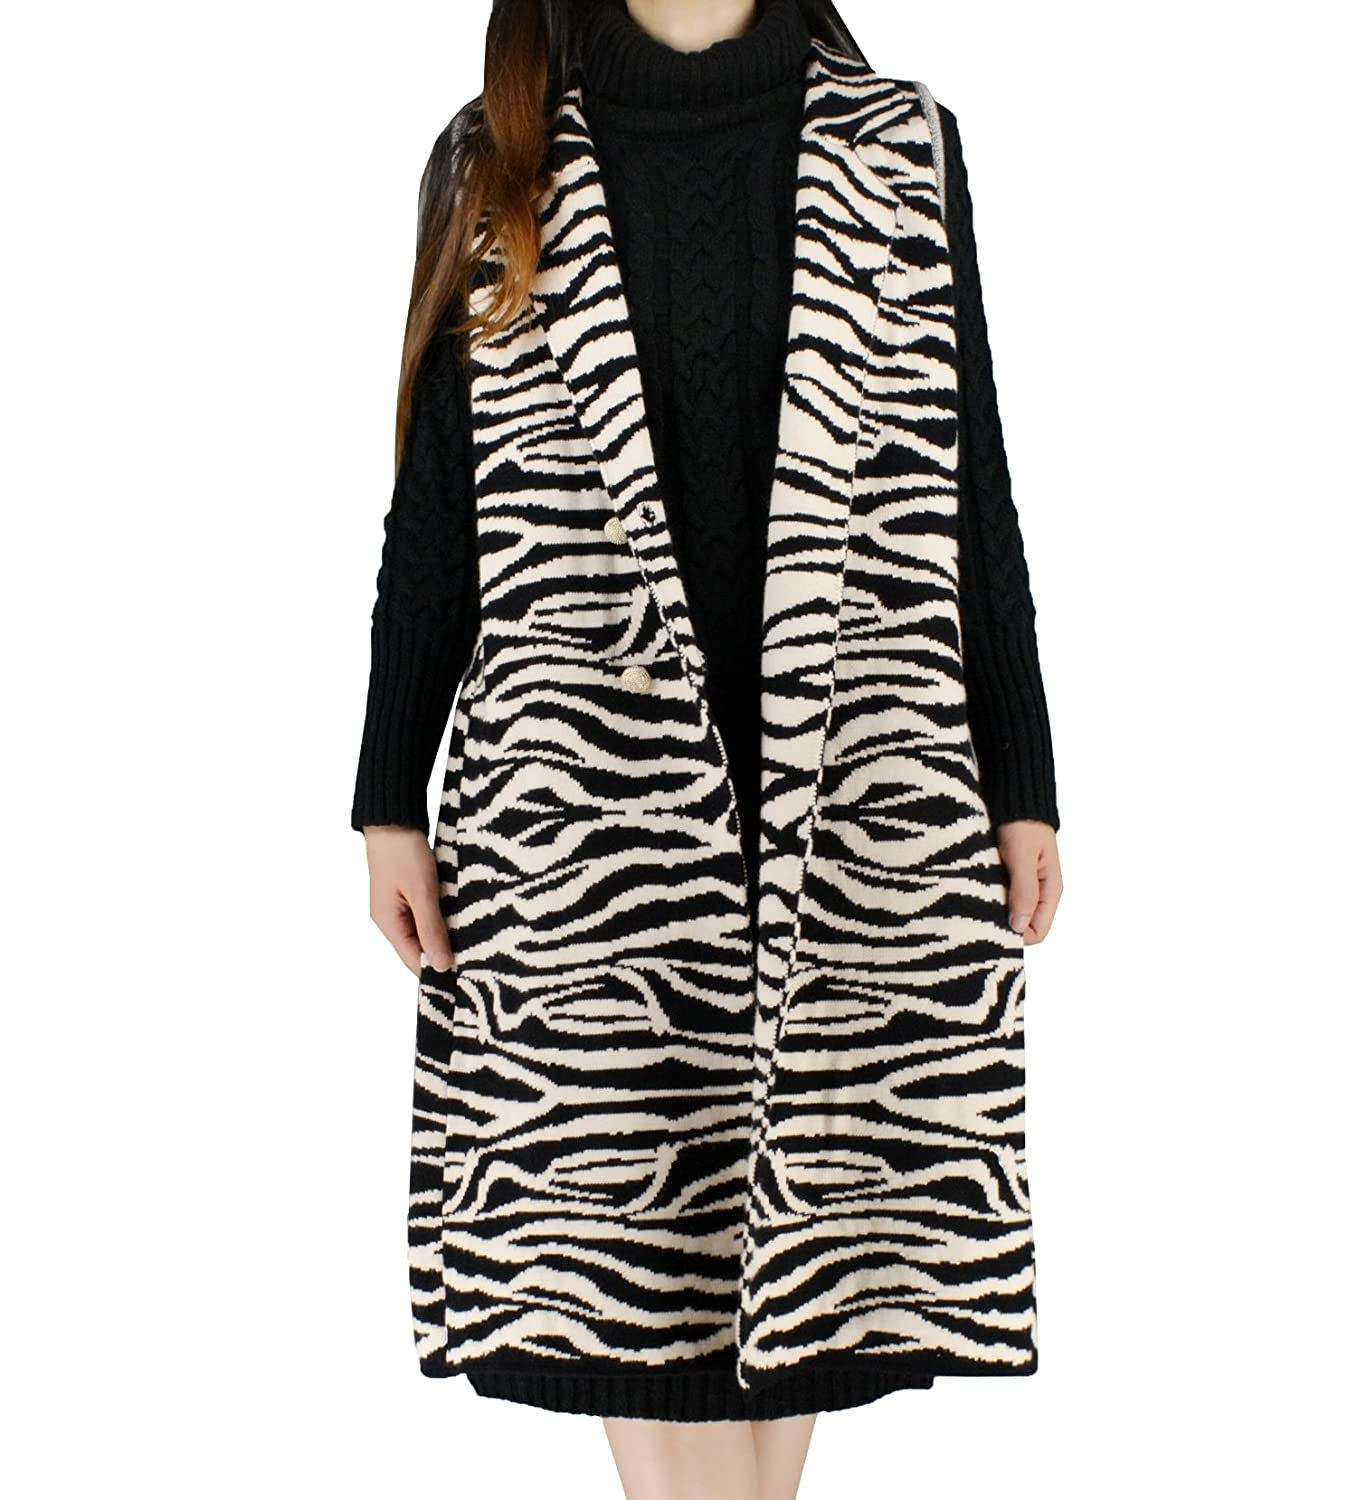 YSJ Women's Long V-Neck Knit Sweater Vest Zebra Print Loose Vests Black) H-7